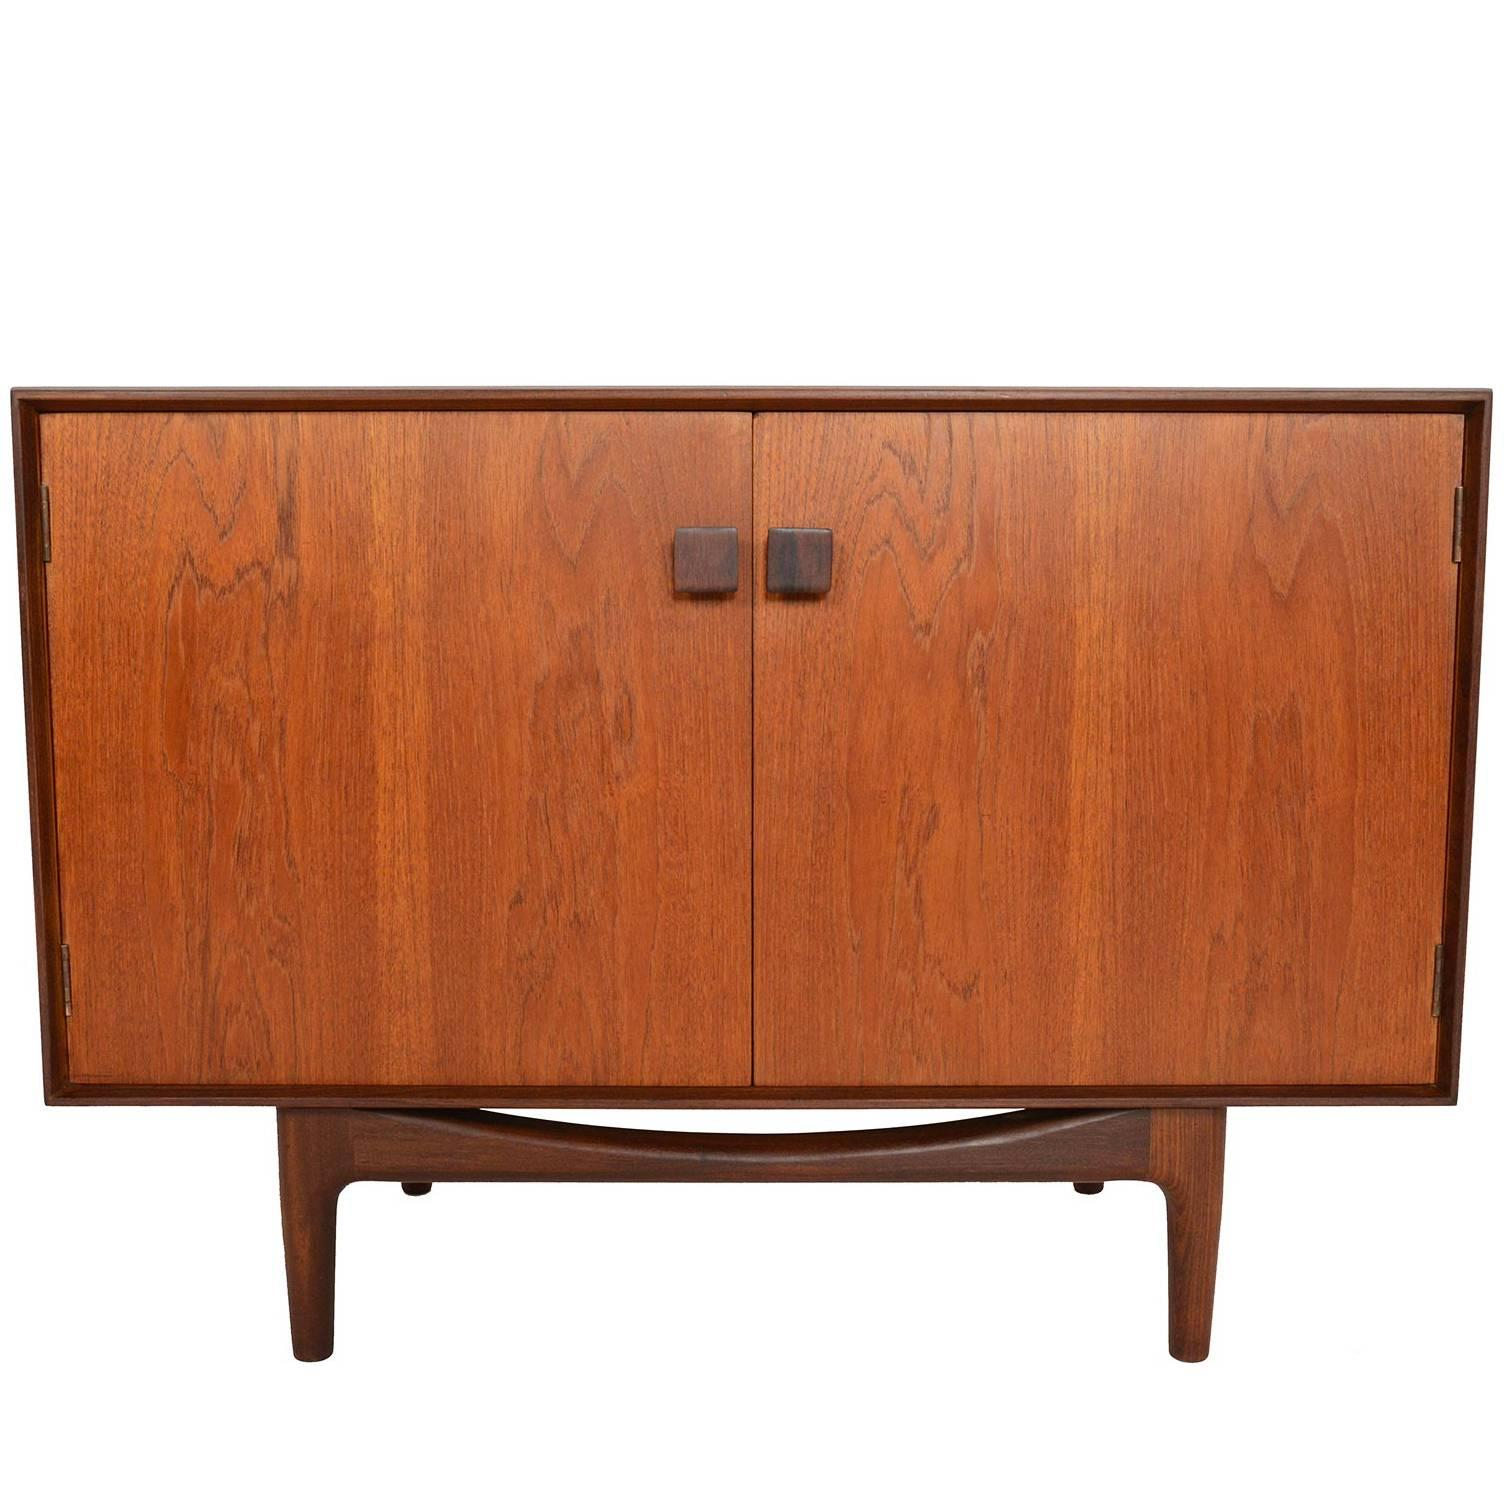 Small Refinished Teak Credenza By Ib Kofod Larsen For G Plan #4